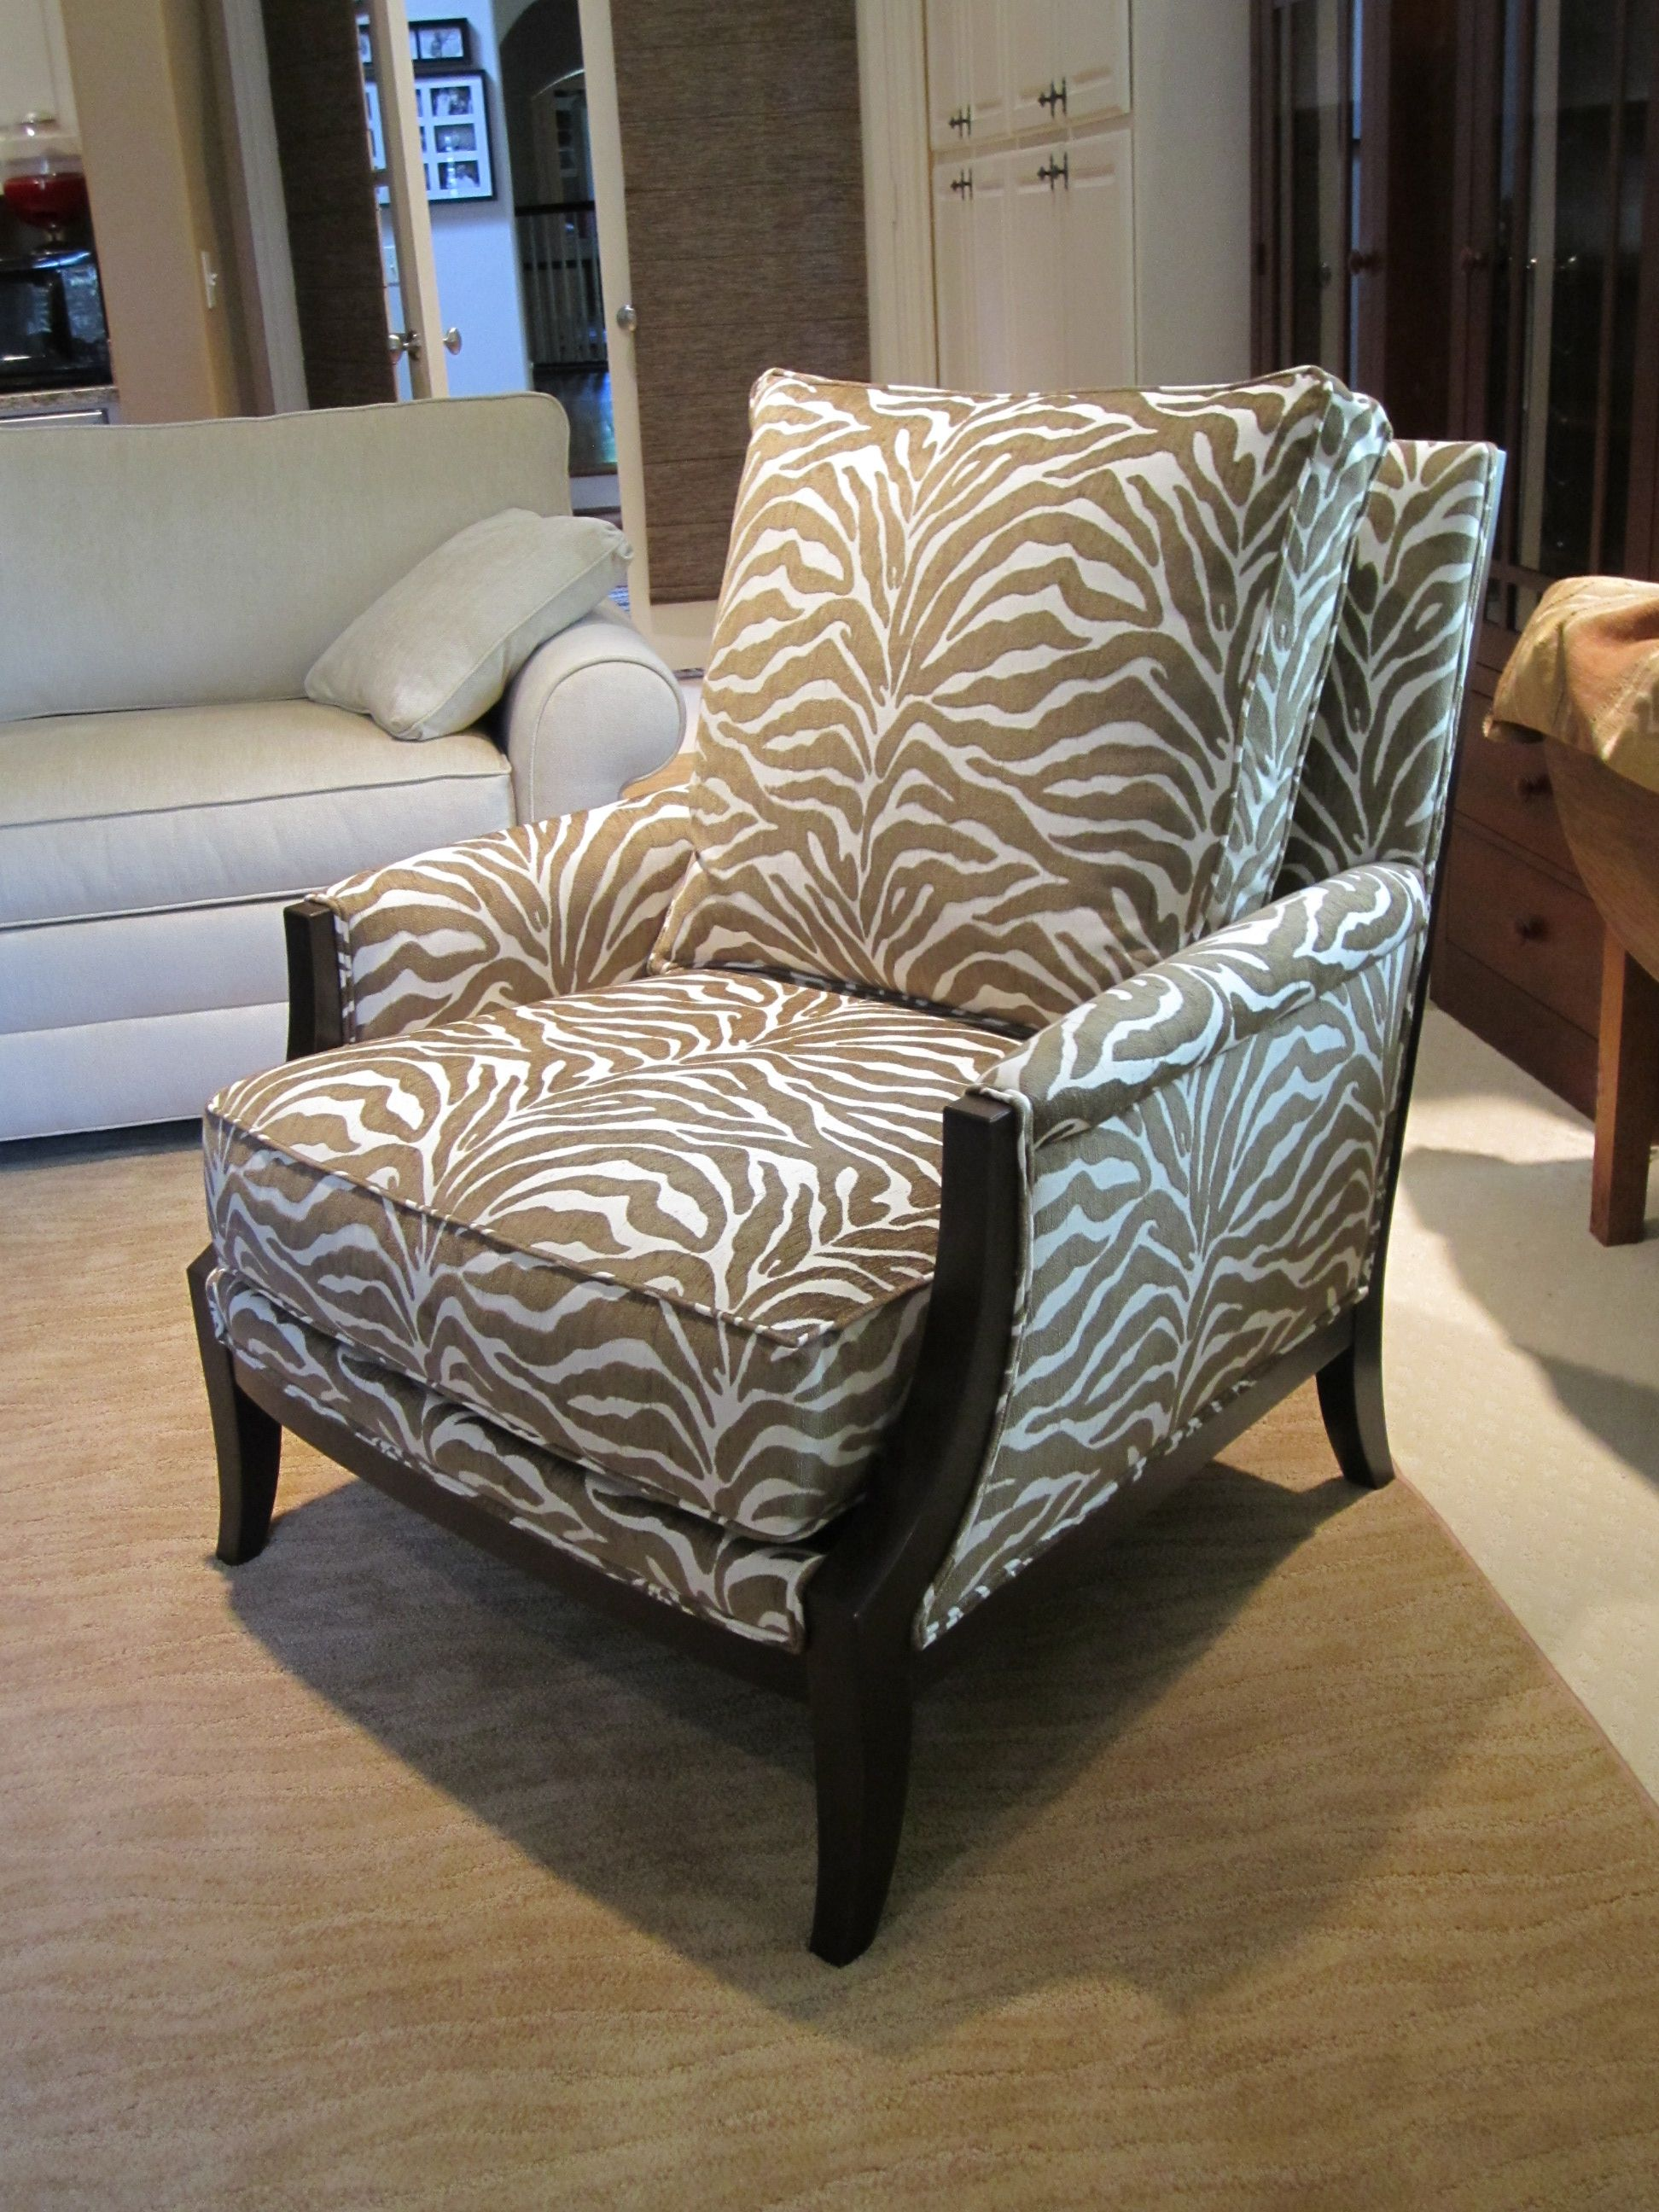 Grayson Chair Beautiful Houses Interior Home Interior Design